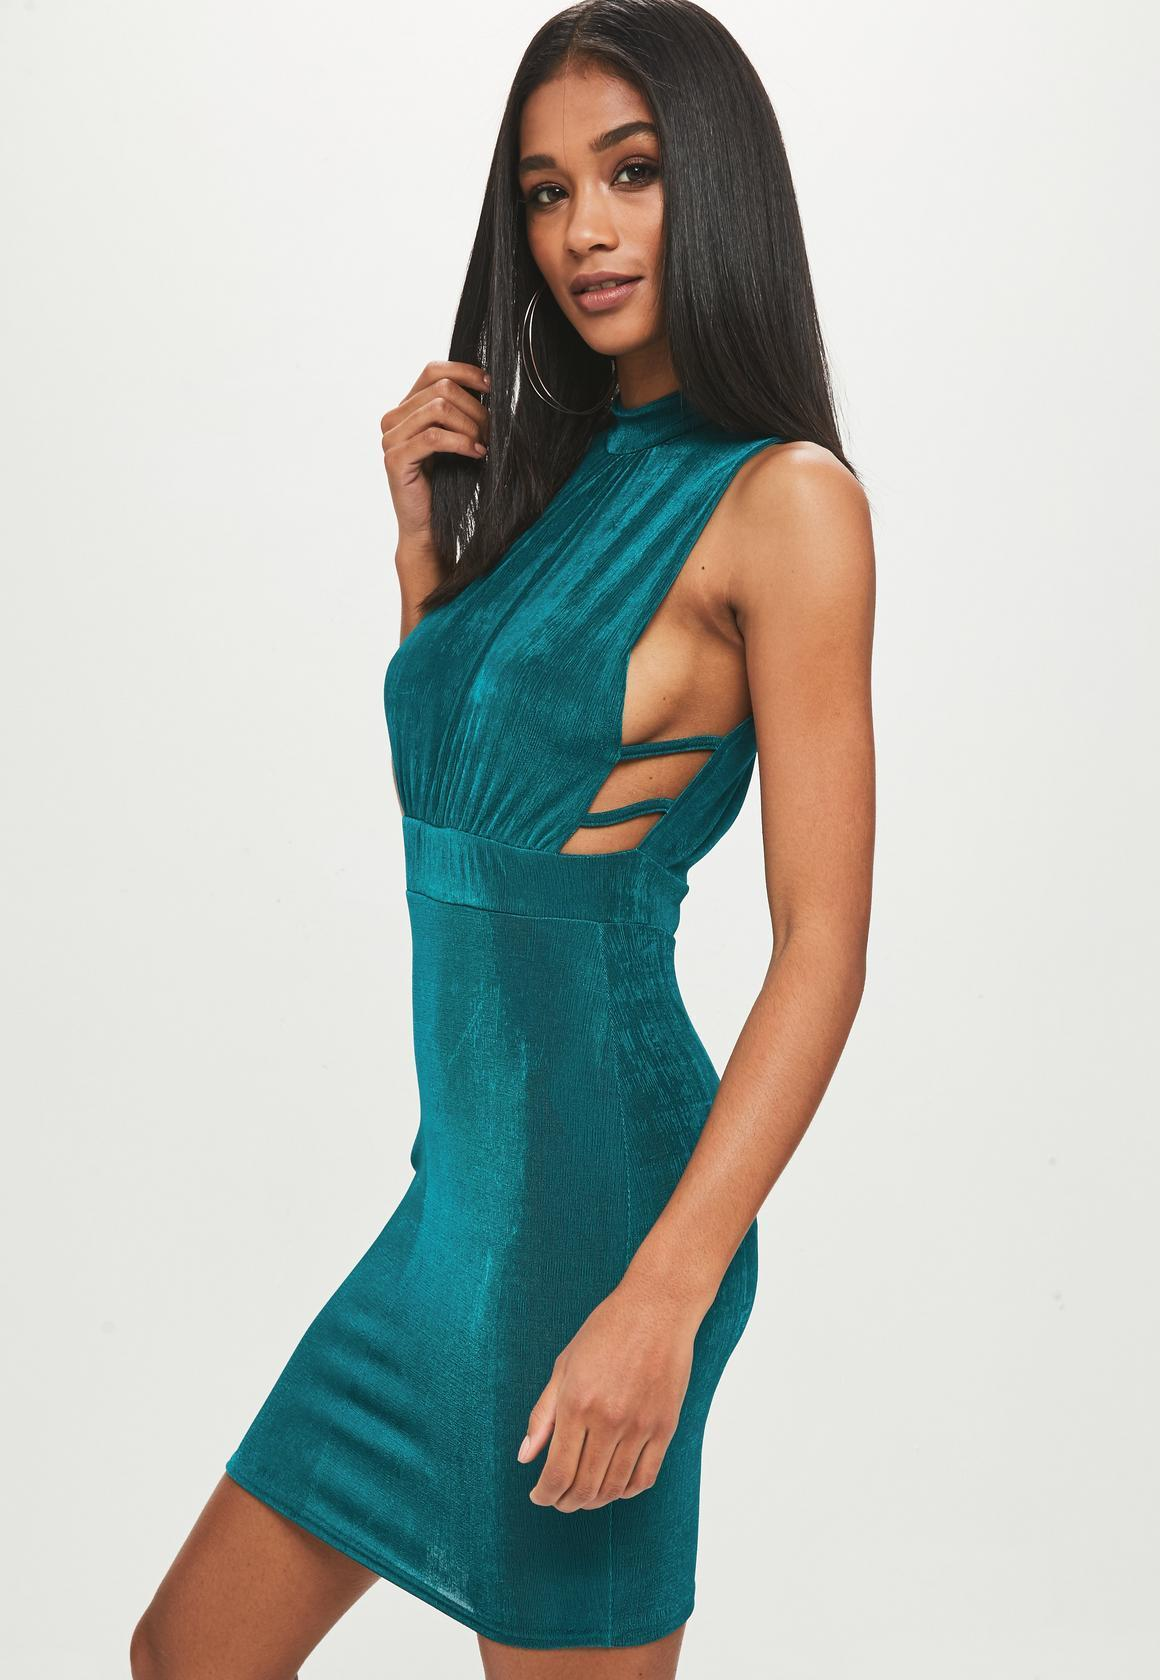 【海外限定】Missguided人気ドレス☆Teal slinky high neck dres